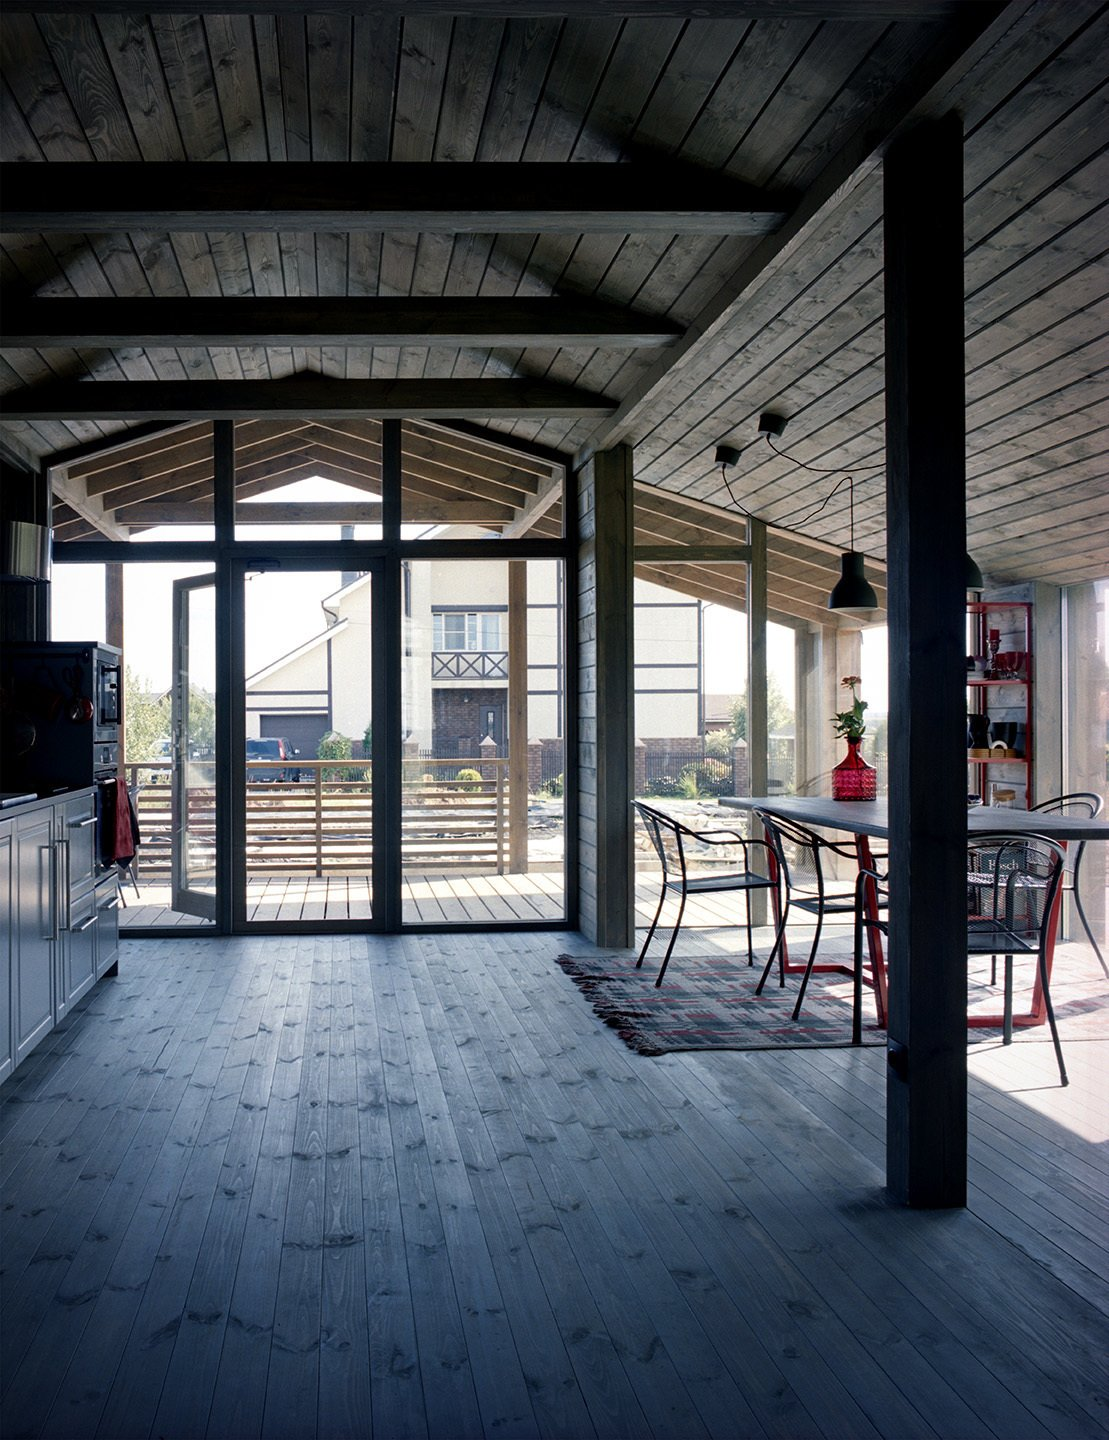 """With its timber rafters and expanses of glass, the house contrasts with its more conventional neighbors. To keep the focus on the views, Anna opted for minimal furnishings. The final design is the result of many imagined interiors, she explains: """"I dreamt about this house for some time—then I saw it in real life."""" In the dining area, a pair of IKEA Hektar pendants hangs over a table designed by Anna's employees as a gift. The chairs are from European home improvement store Obi; the rug is vintage."""